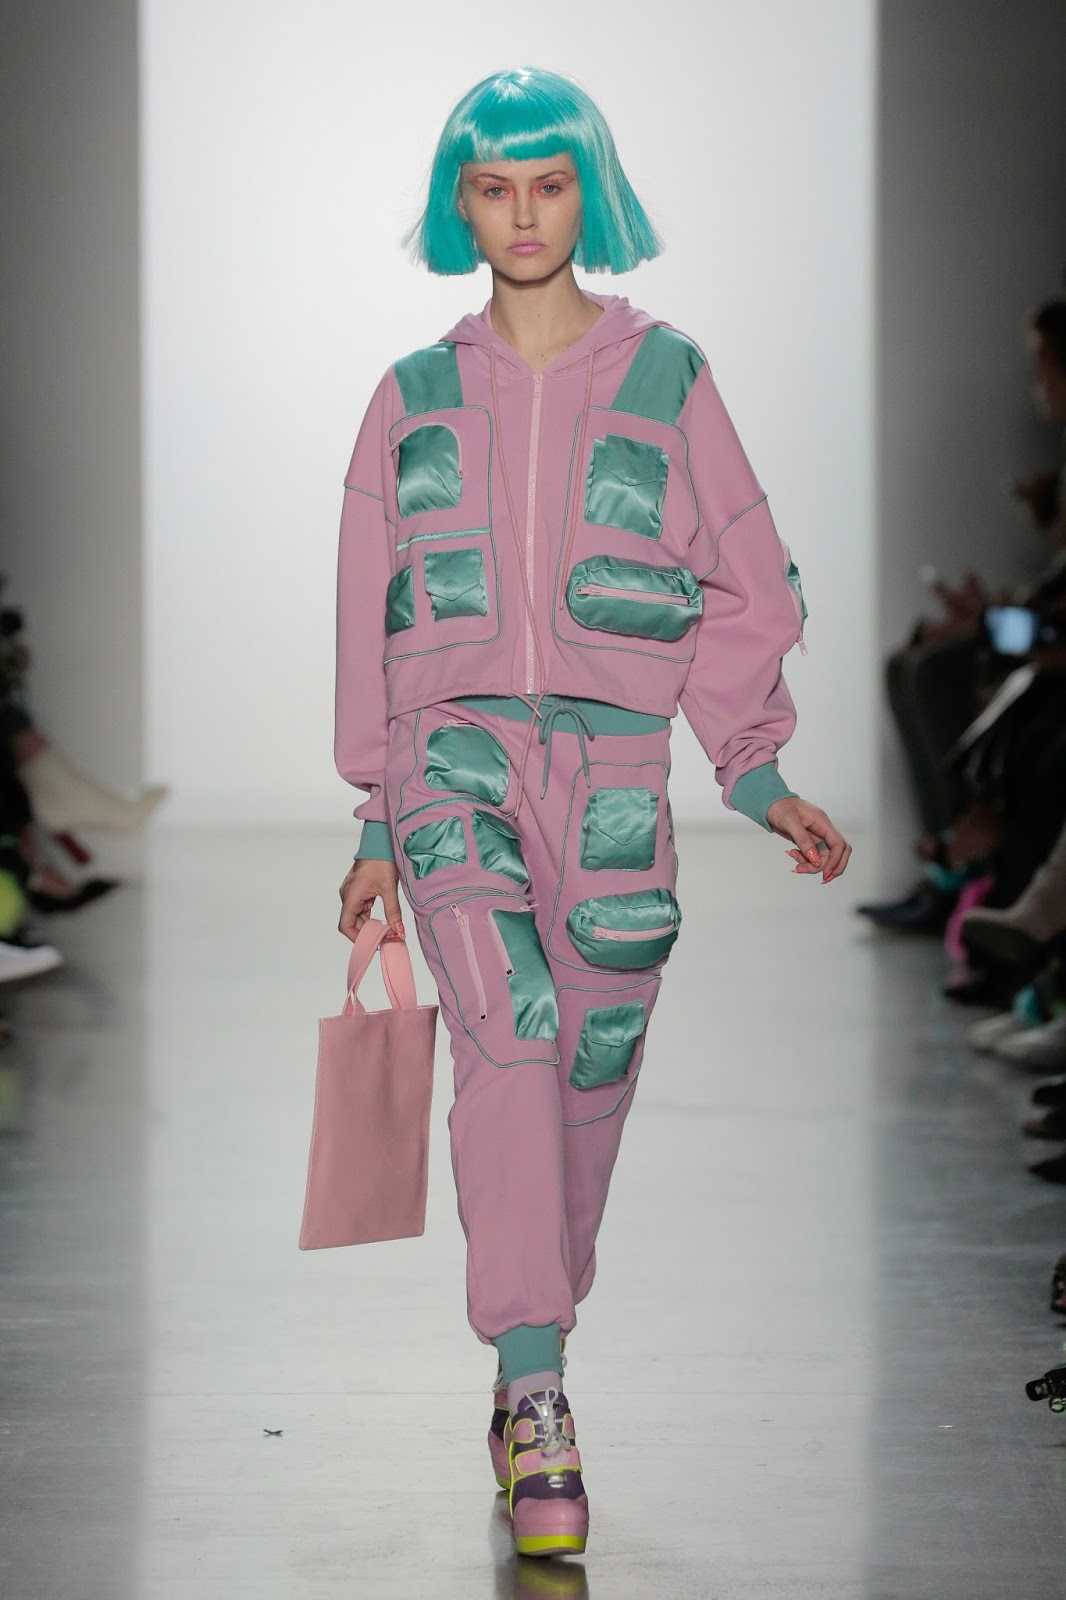 758e4060c8b49 Fashion Week New York F-W 18  Jeremy Scott - FADED4U